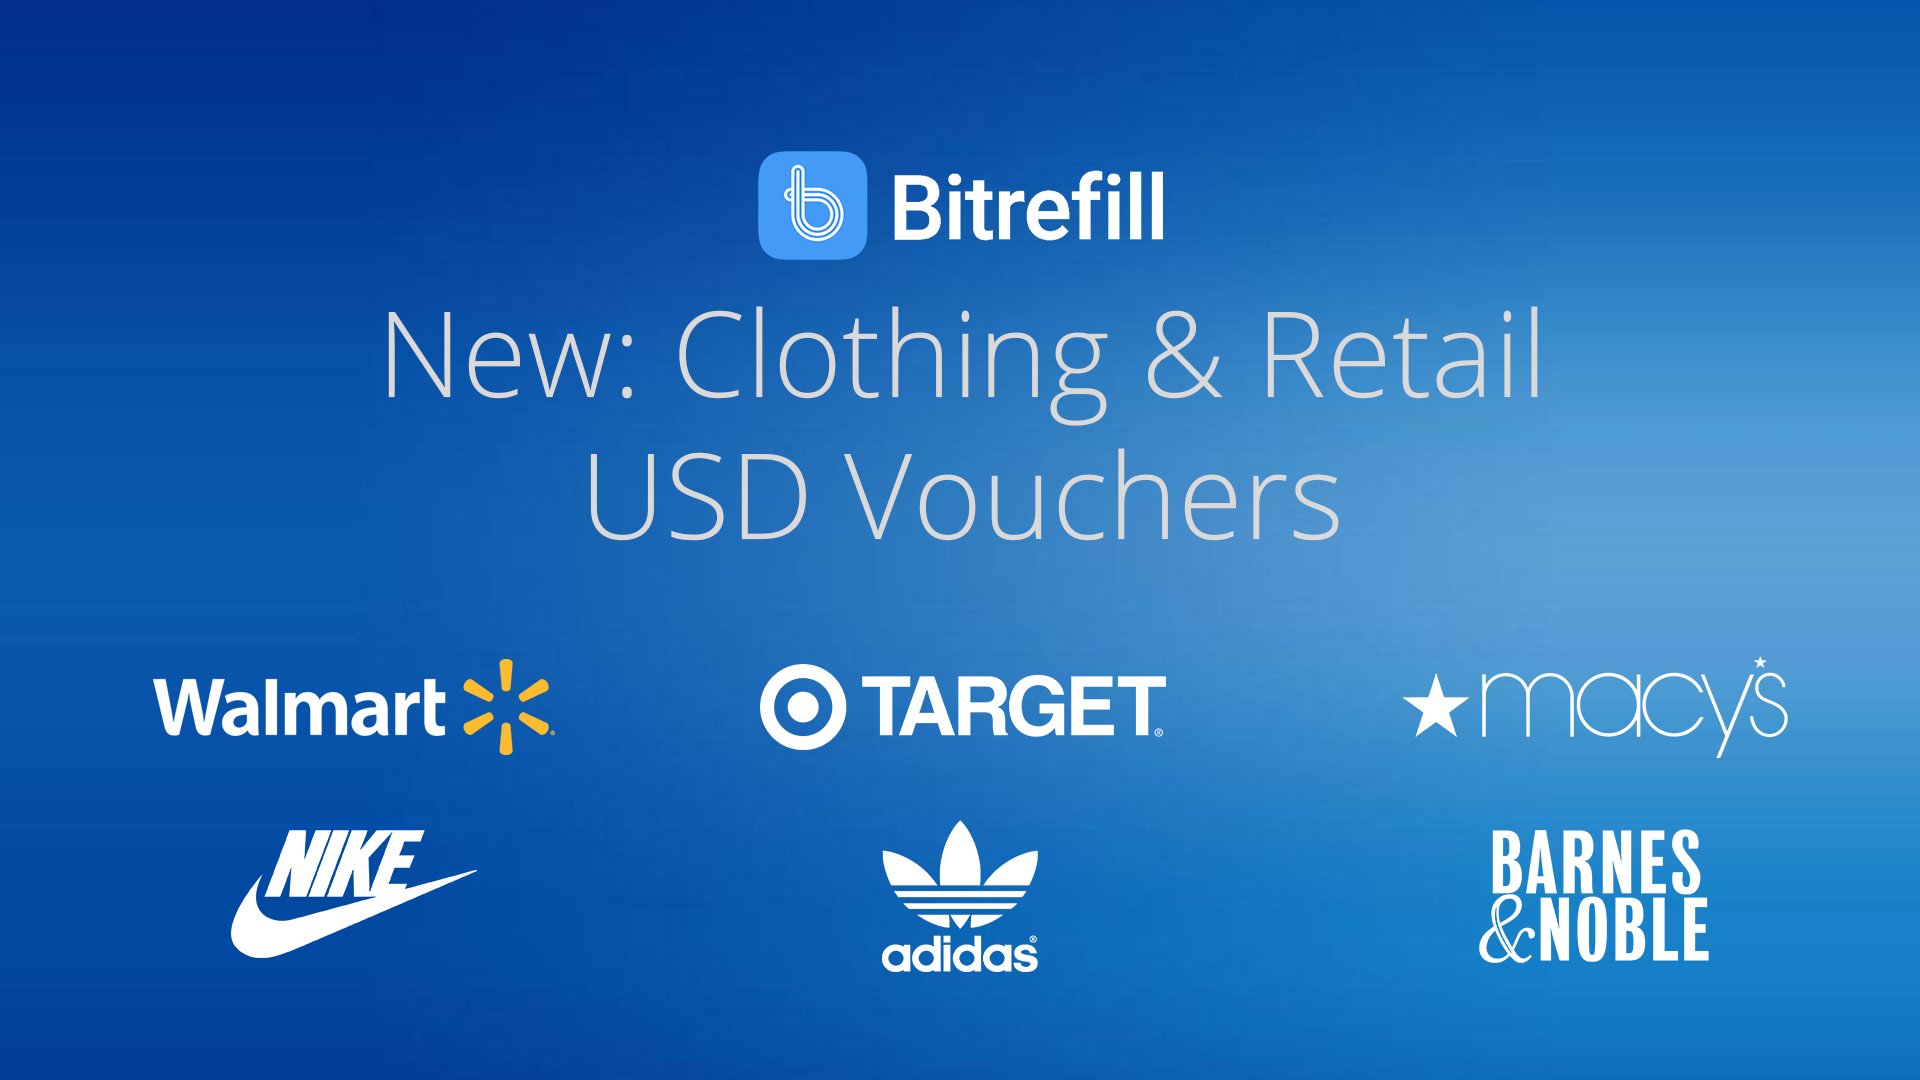 Retail is here — Buy Walmart, Target & more vouchers with